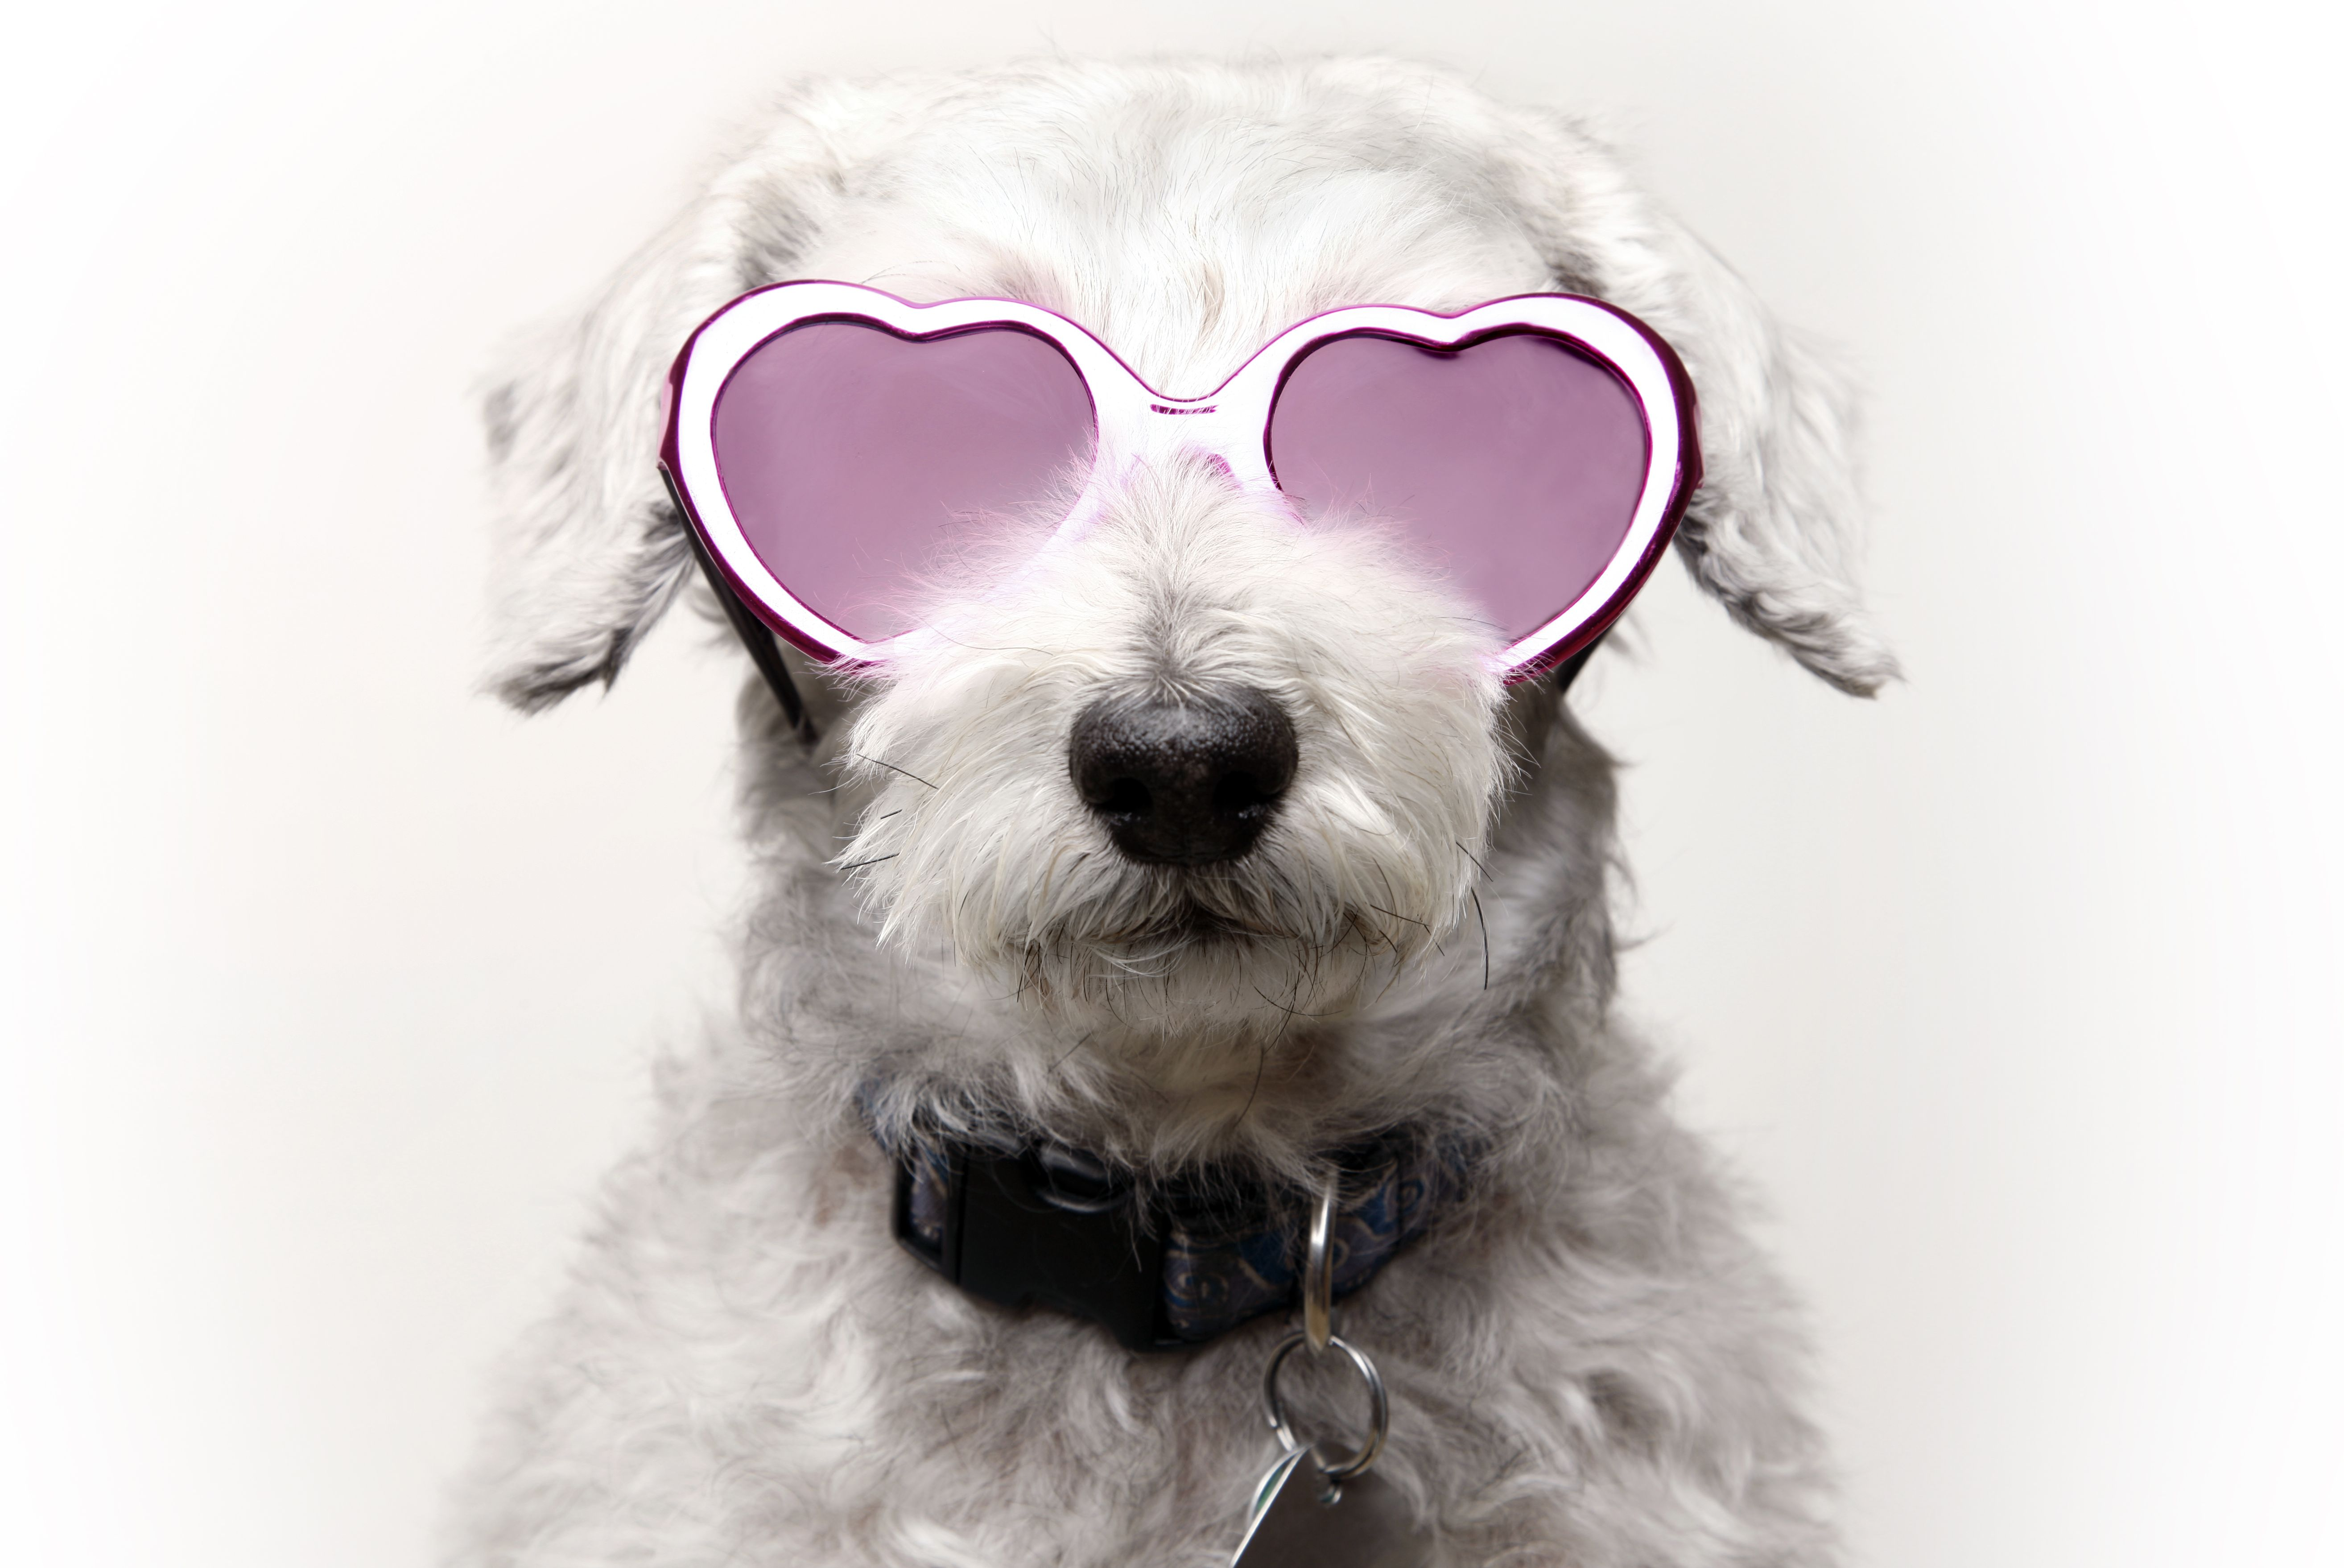 Dog with Rose Colored Glasses